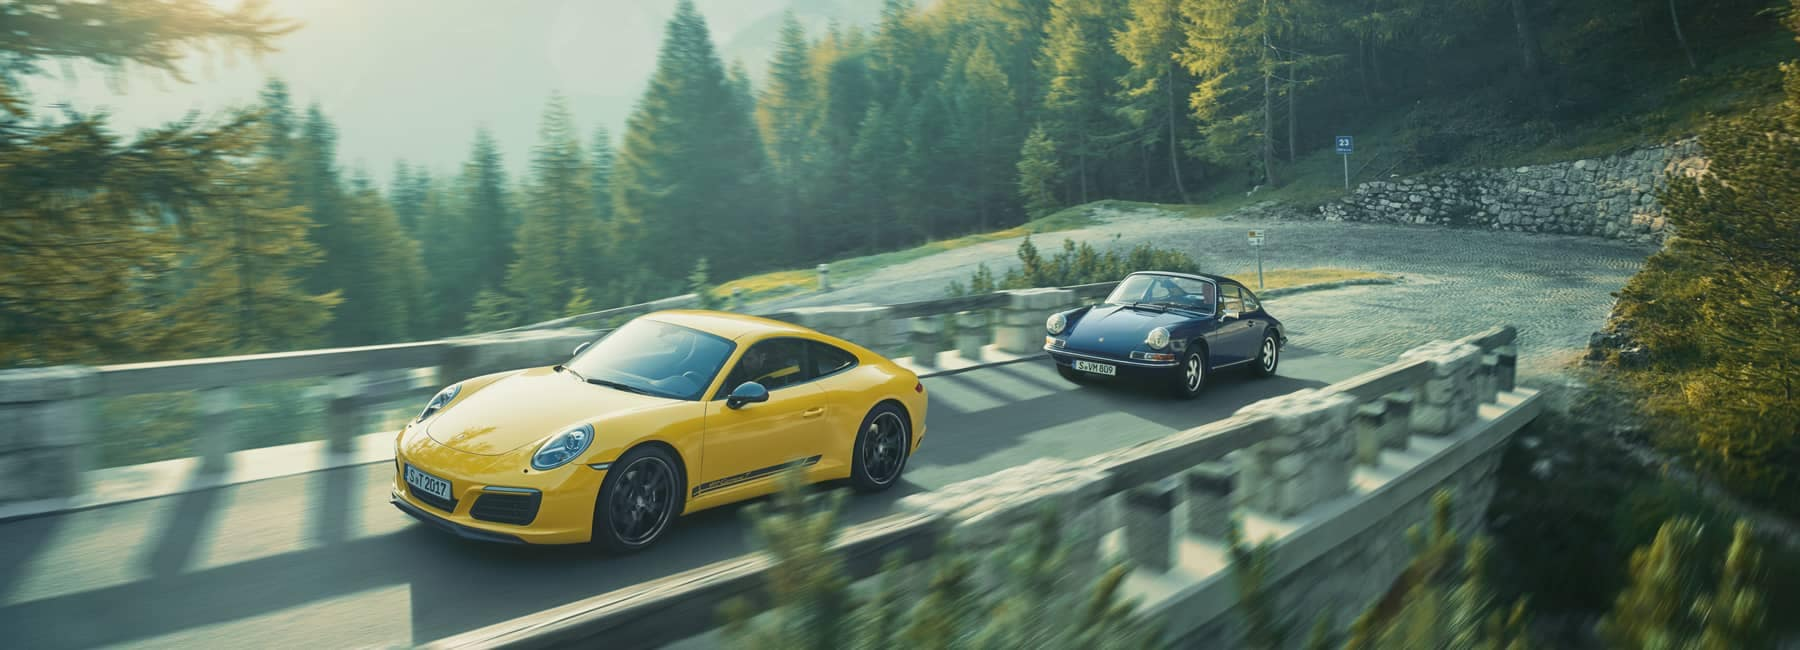 2019 Porsche 911 Review with Specs & Price at Porsche of Ann Arbor